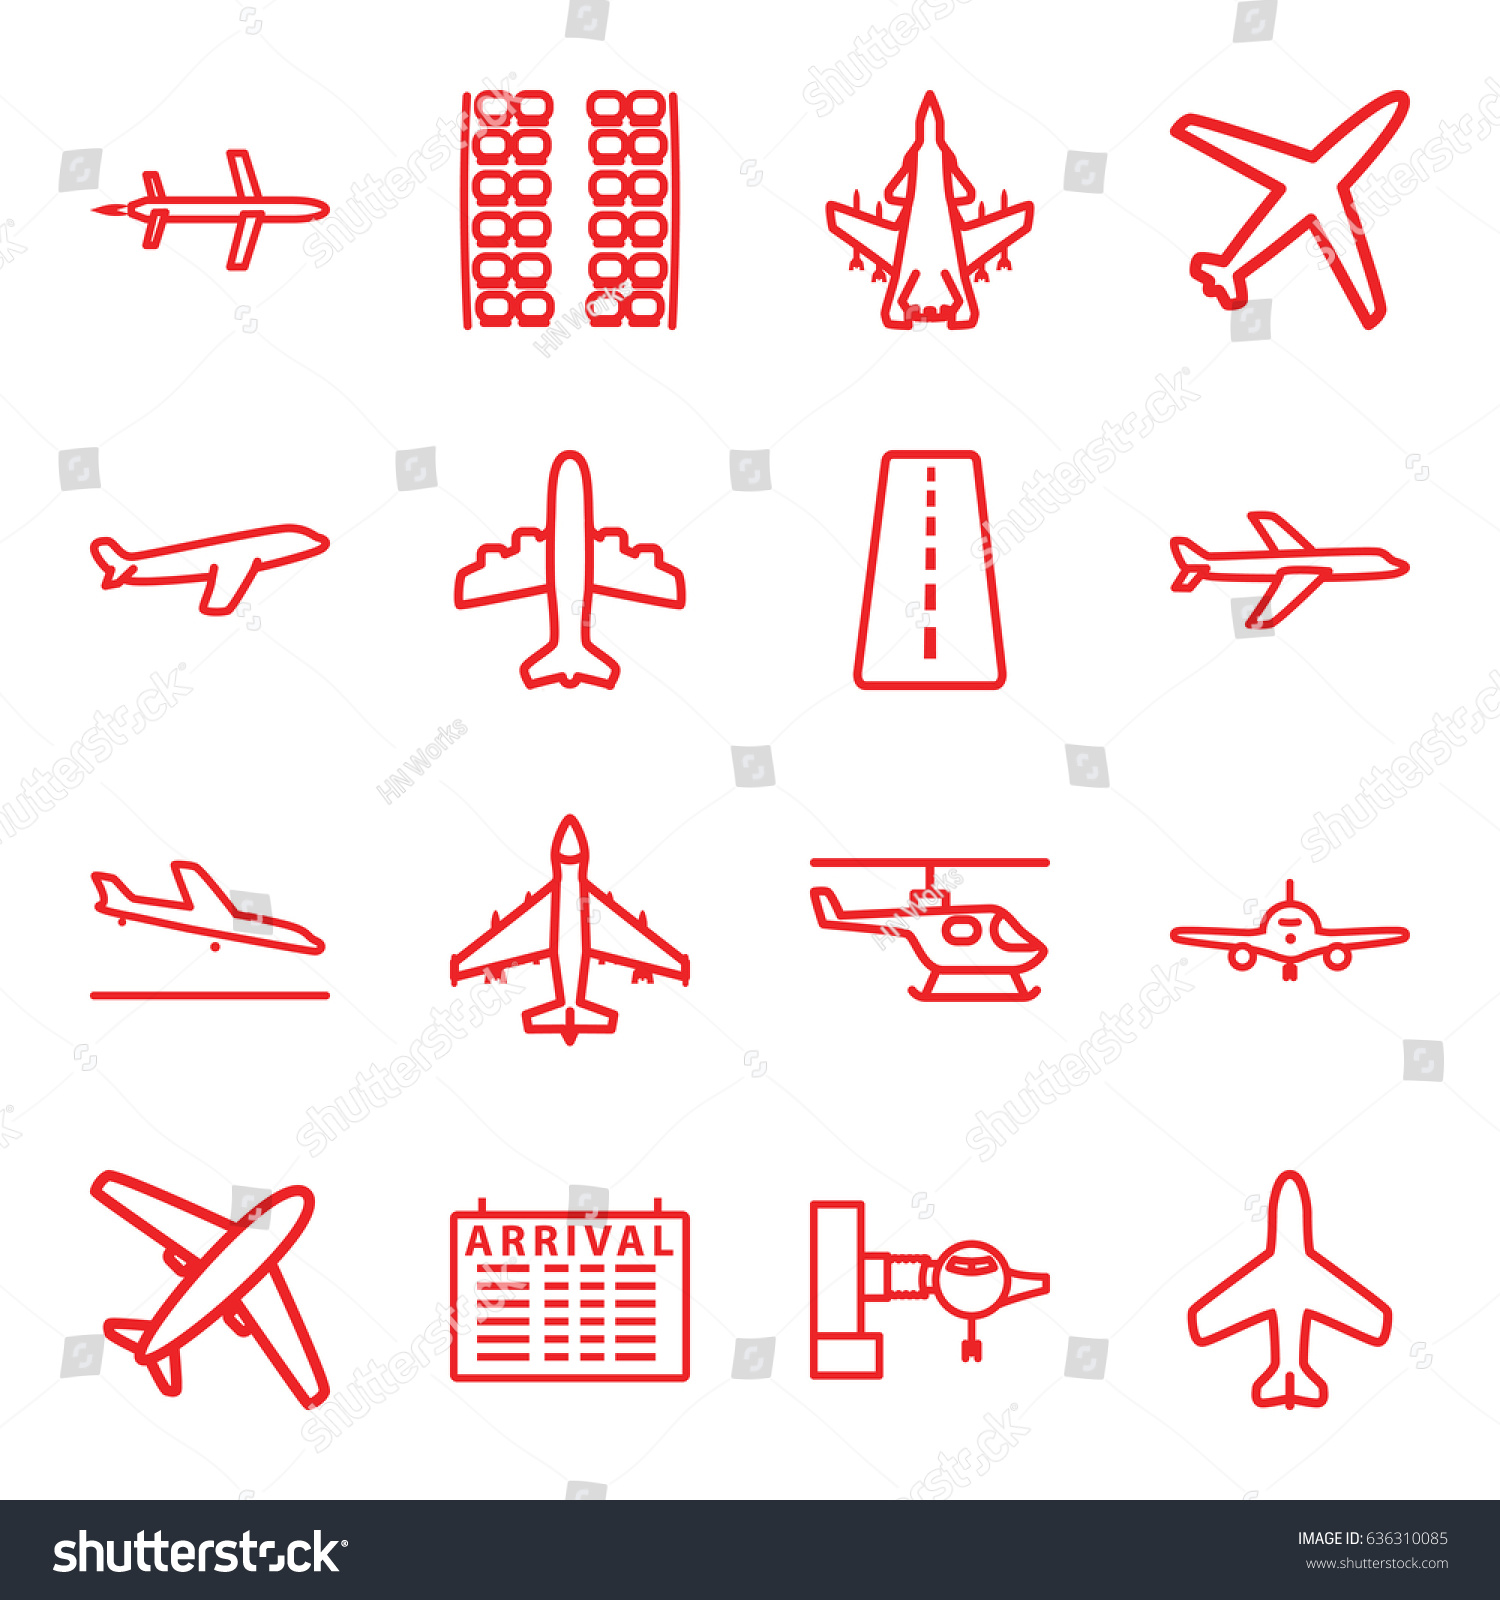 Red robin ticker symbol image collections symbol and sign ideas airline ticker symbols choice image symbol and sign ideas airline ticker symbols images symbol and sign buycottarizona Gallery